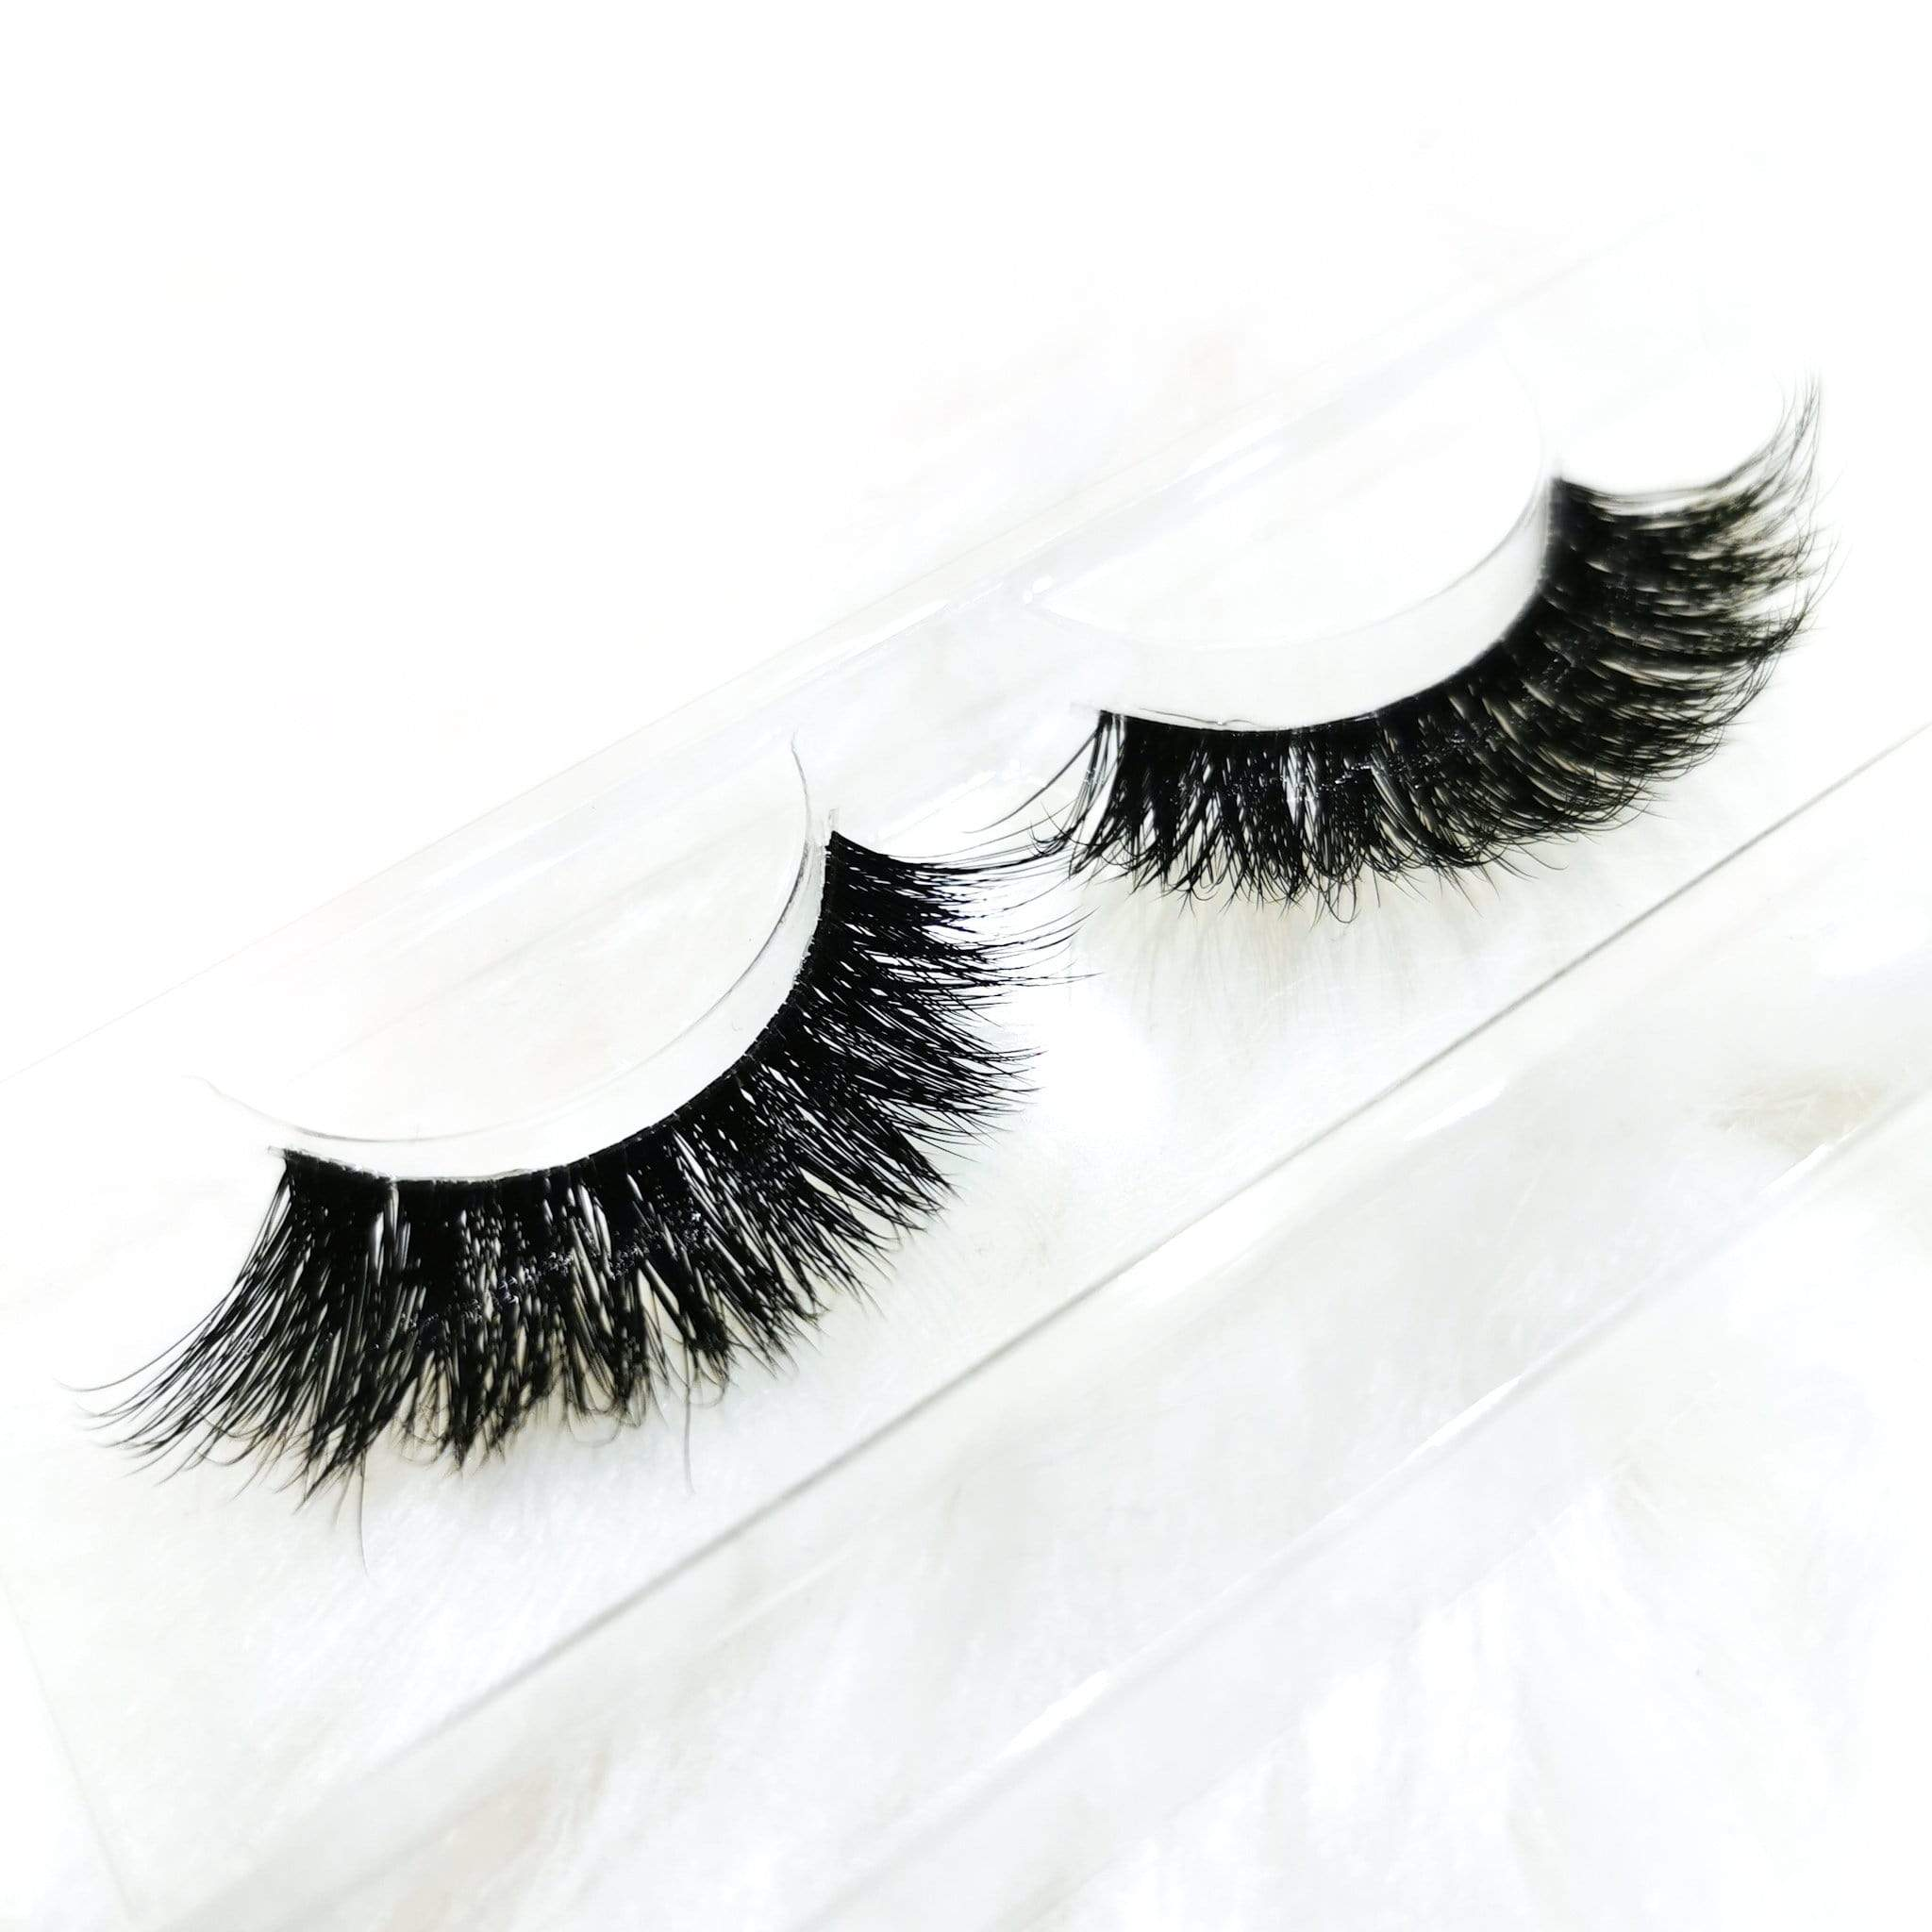 3 Pair Faux Mink Lashes 3 pair of these beautiful wispy